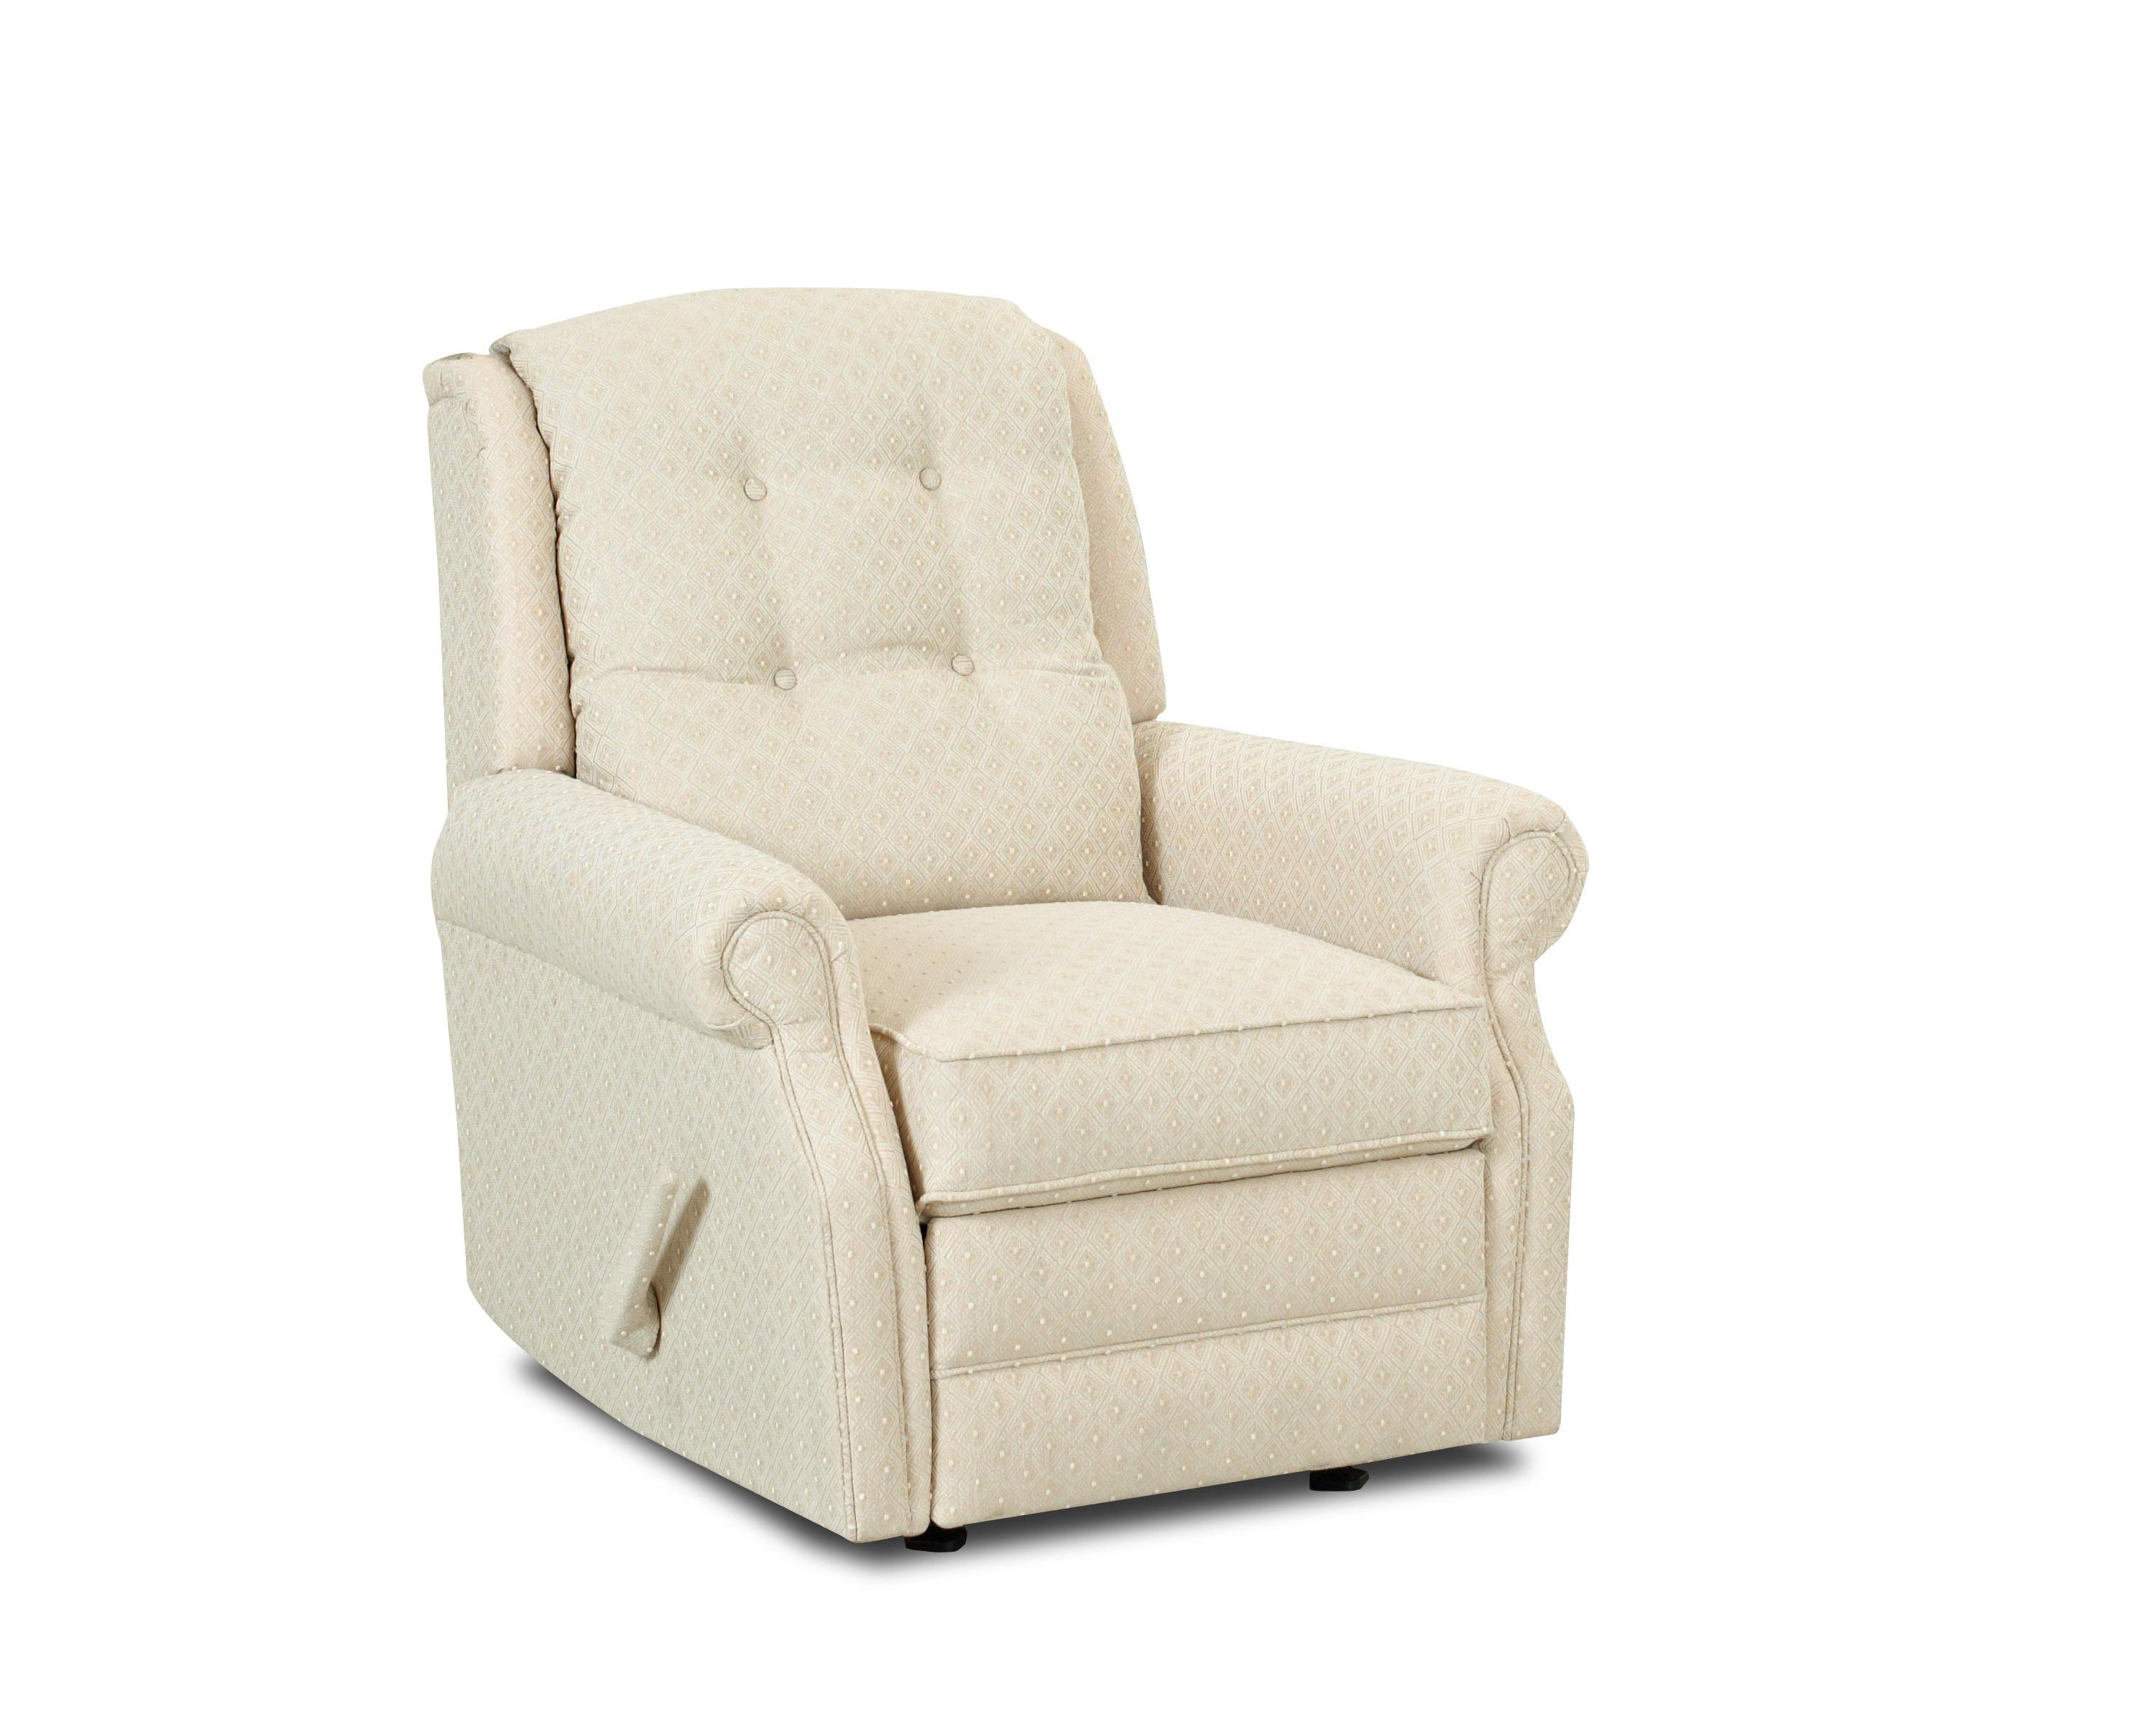 Transitional Swivel Gliding Reclining Chair with Button ...